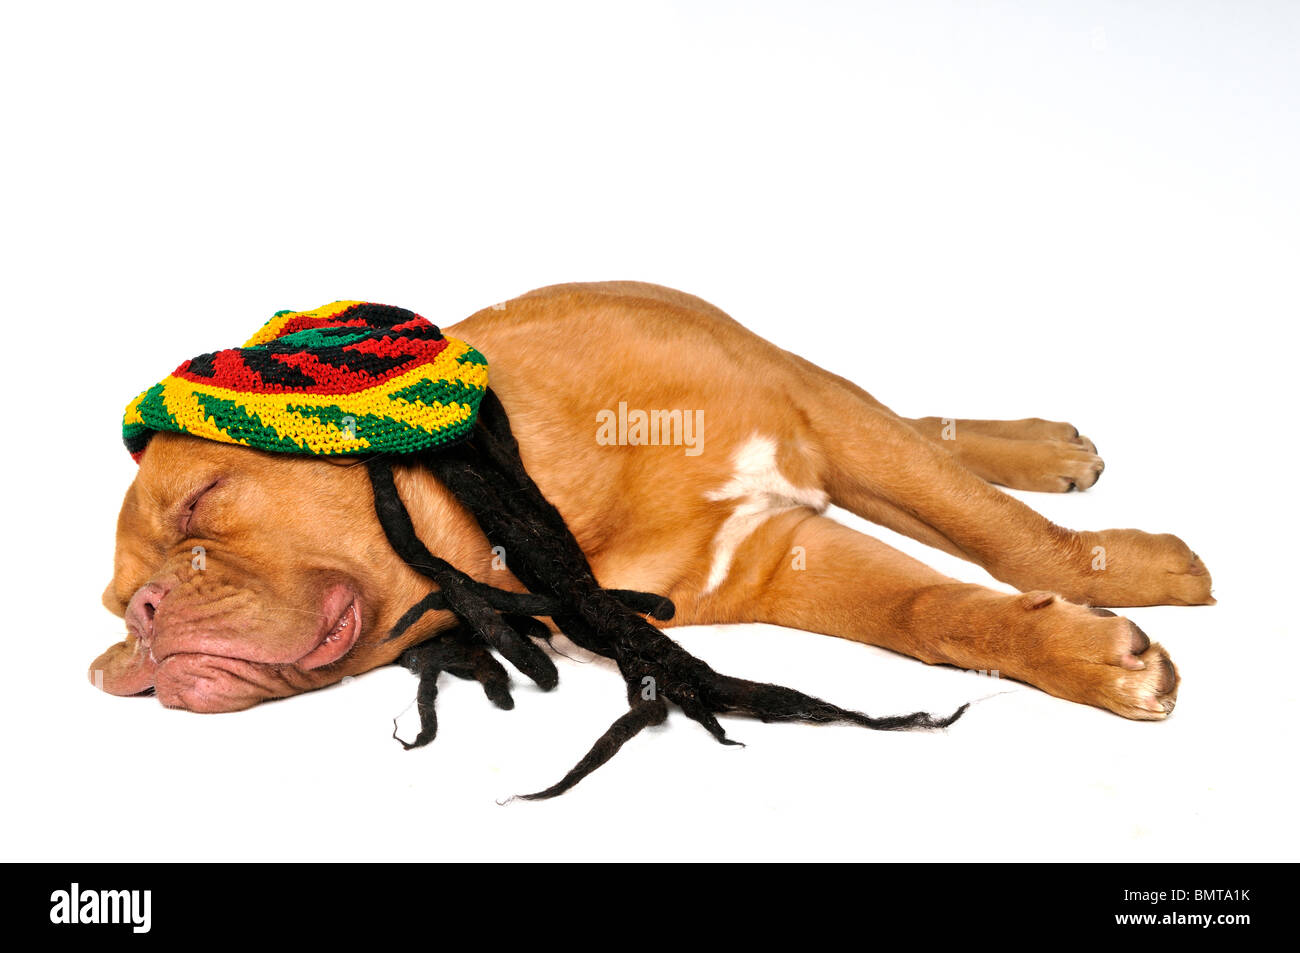 Cute Puppy Dreaming in Rasta Hat - Stock Image